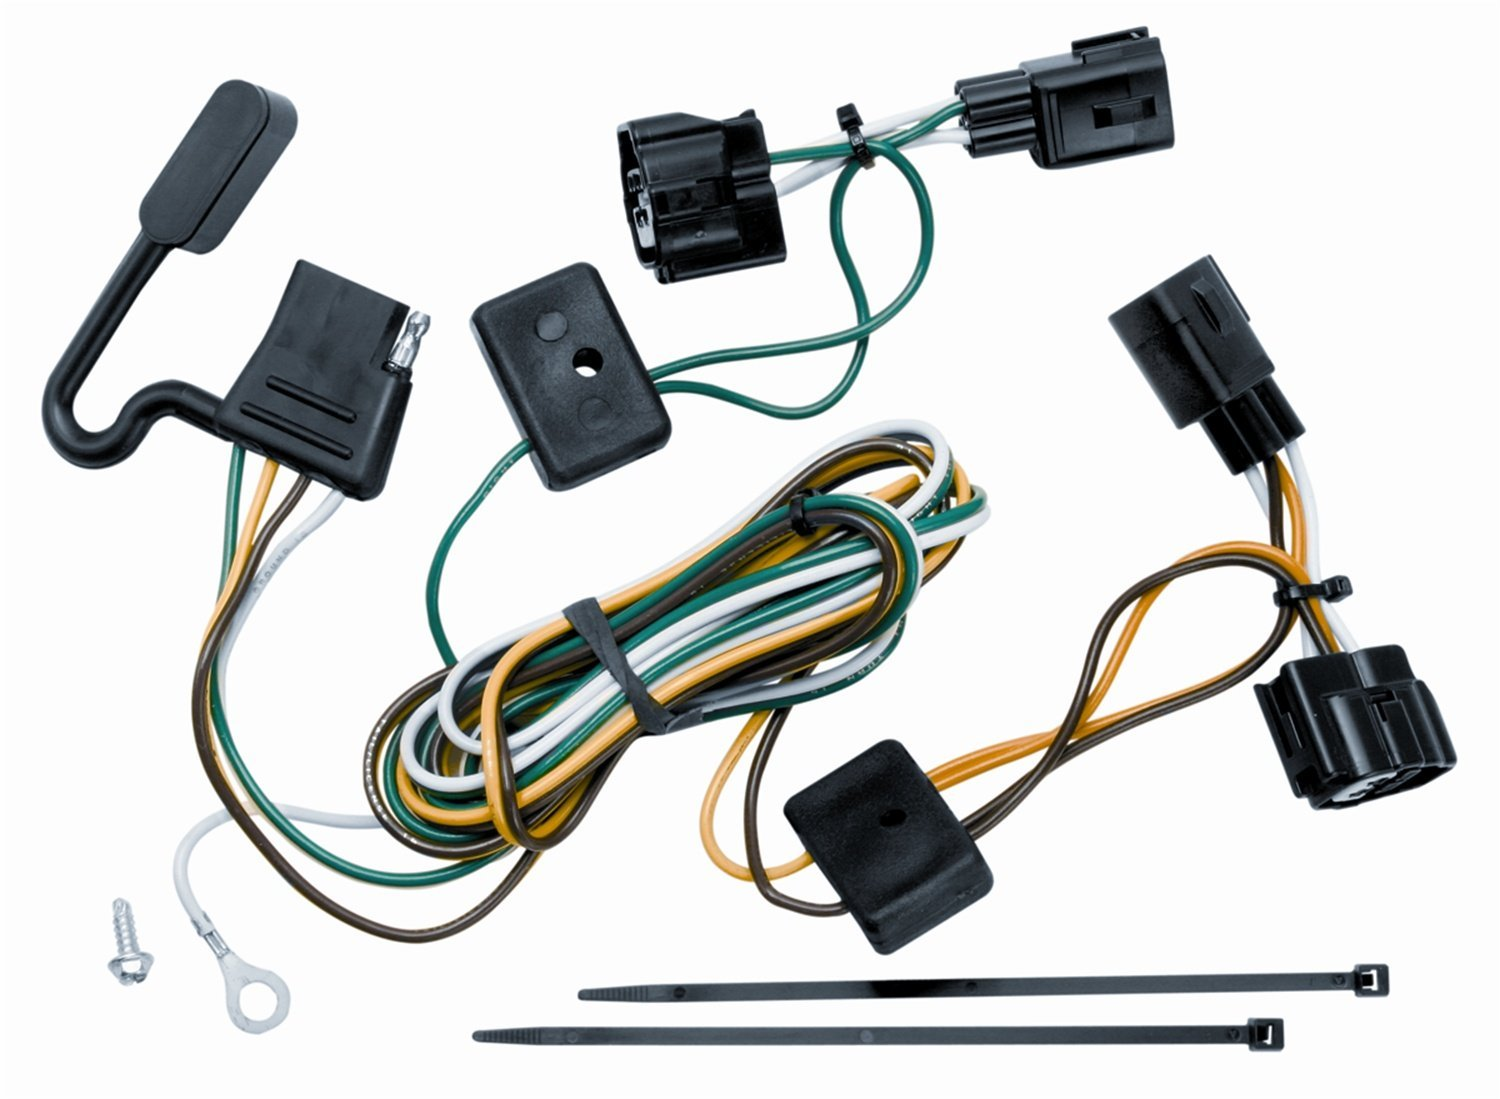 Jeep Yj Trailer Wiring Harness Library Vehicle Specific Get Quotations To Connector 98 06 Wrangler Unlimited